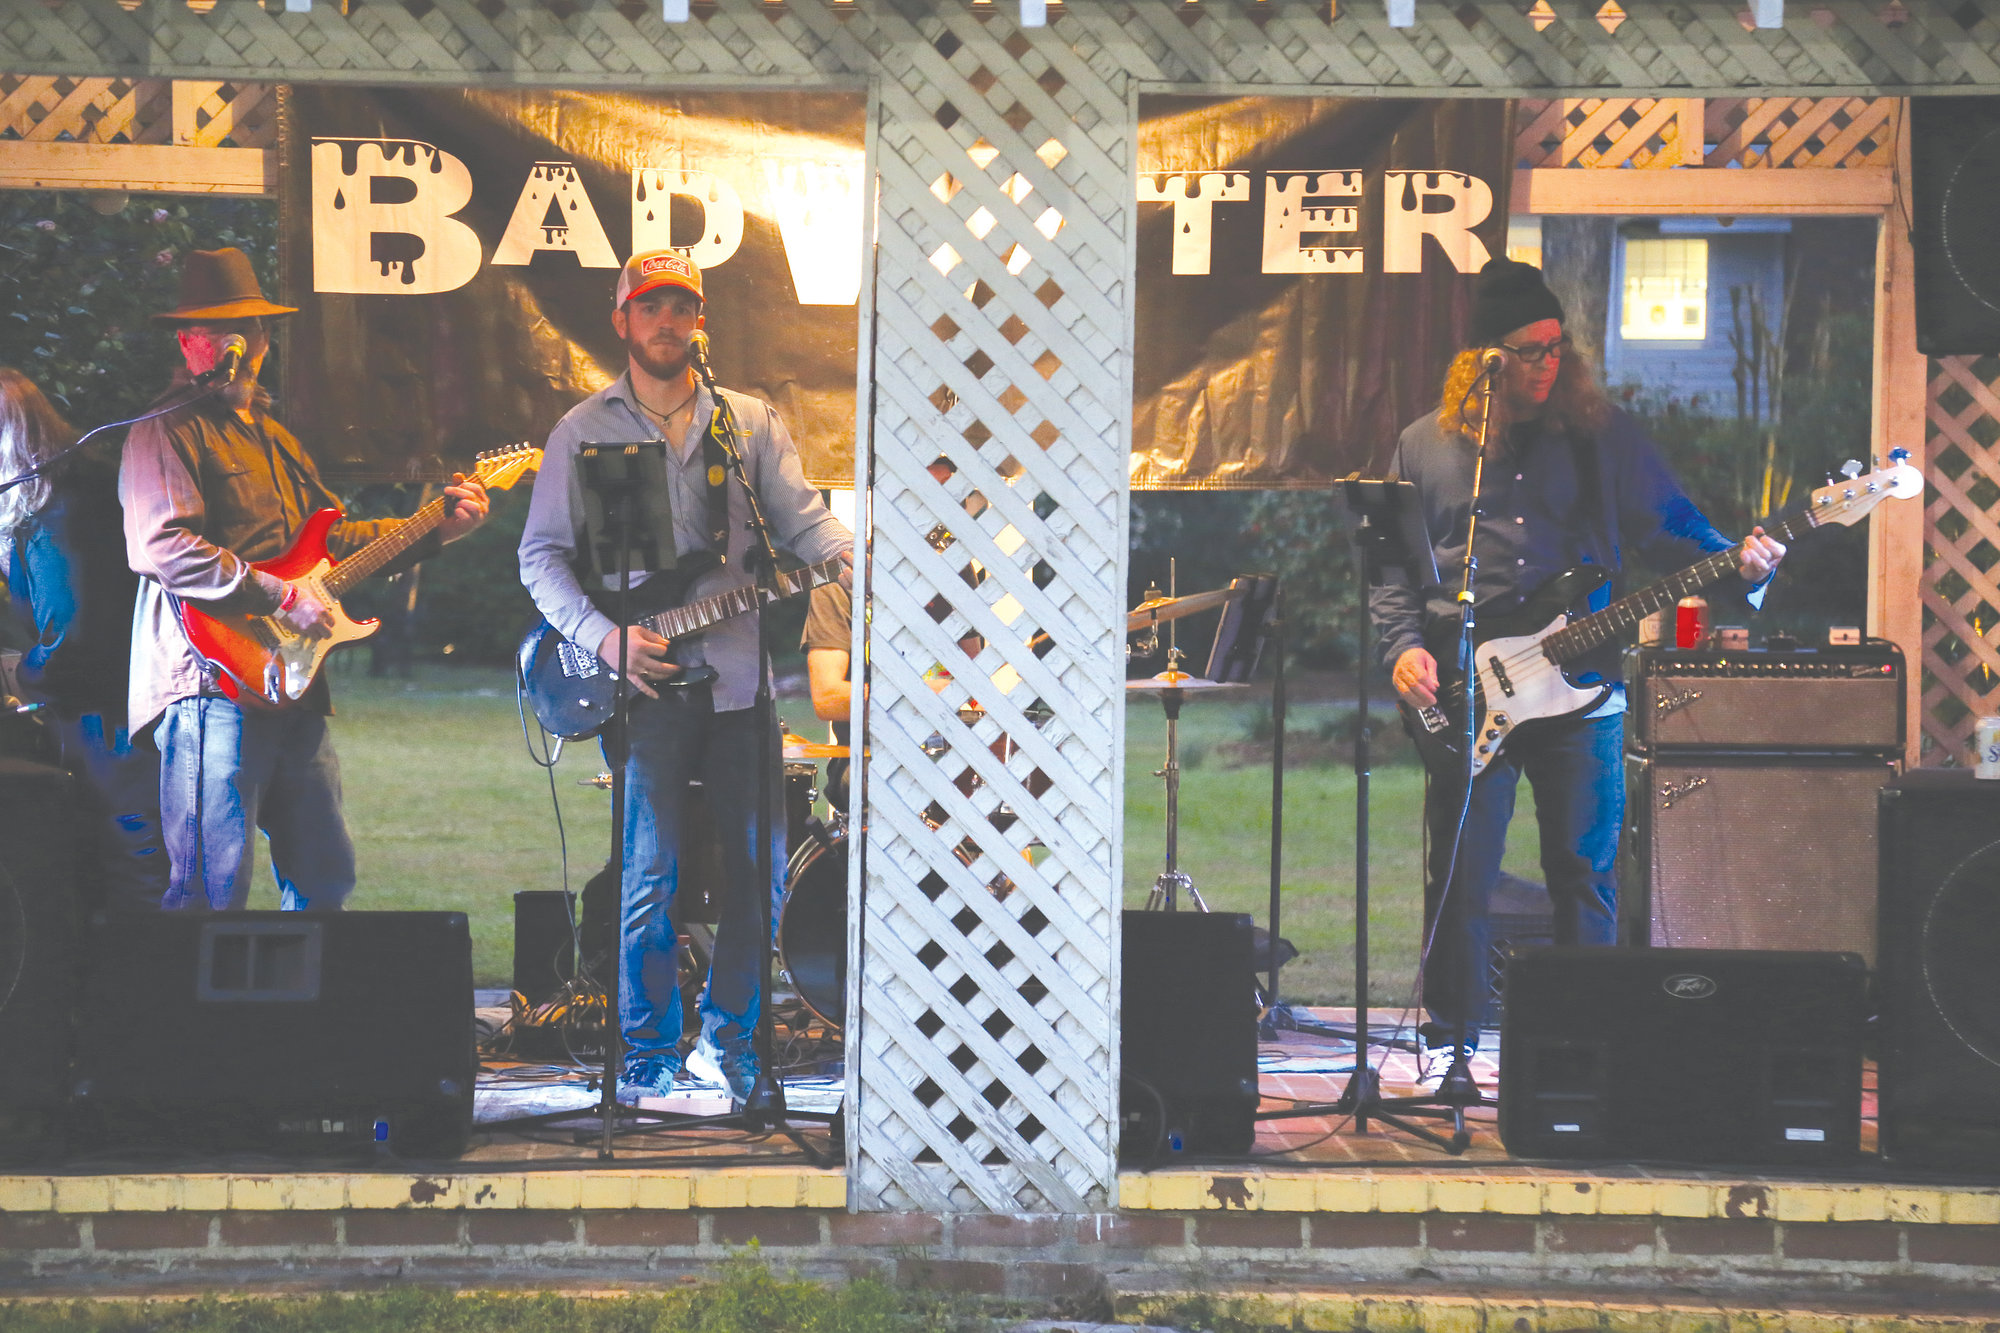 The band Bad Water performs at the YPS Chili Cook Off and Beer Tasting at the Sumter County Museum.